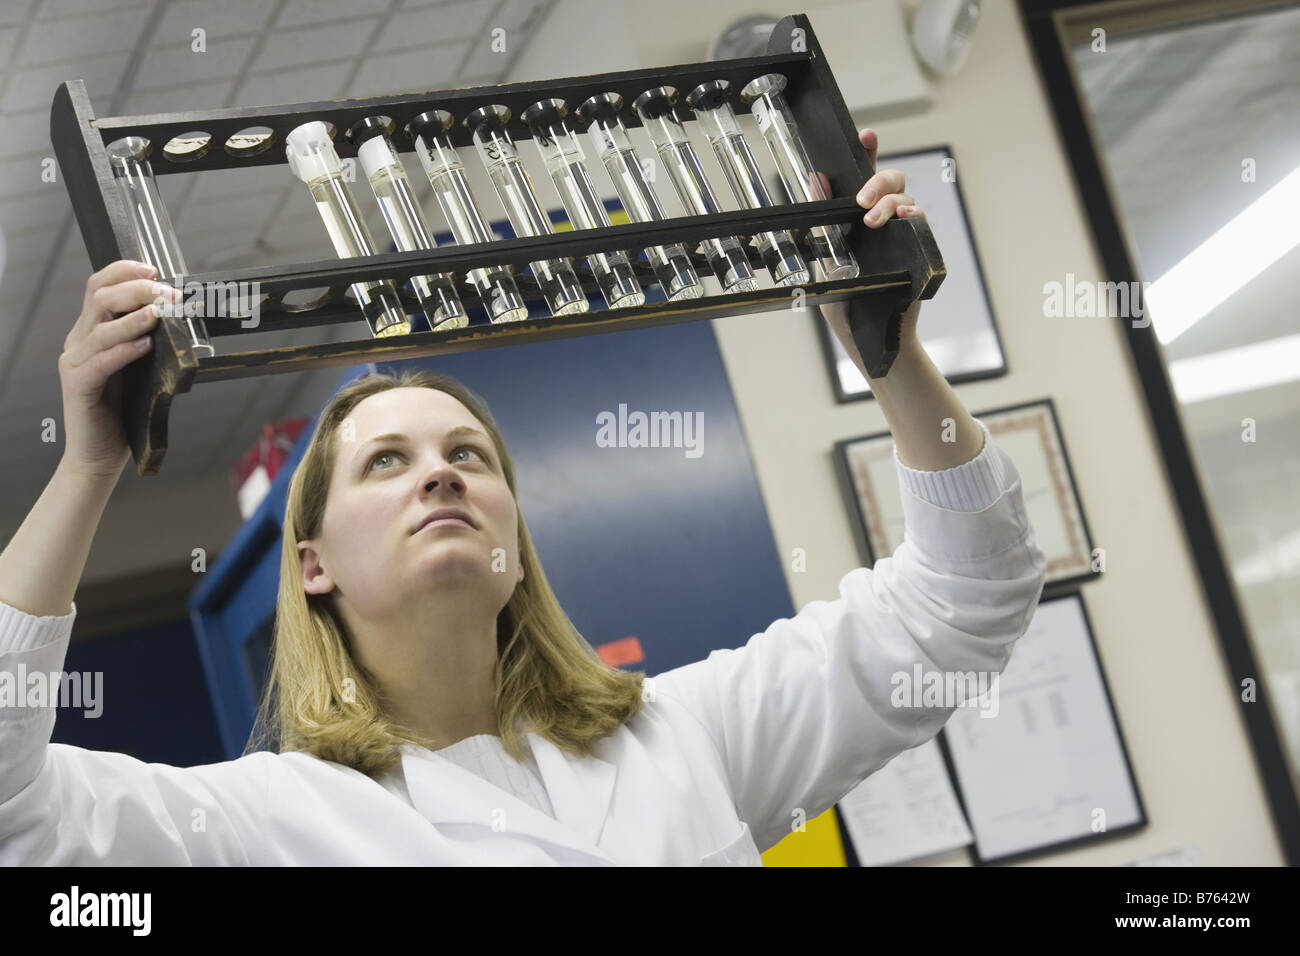 Female scientist inspecting color standards in a rack - Stock Image